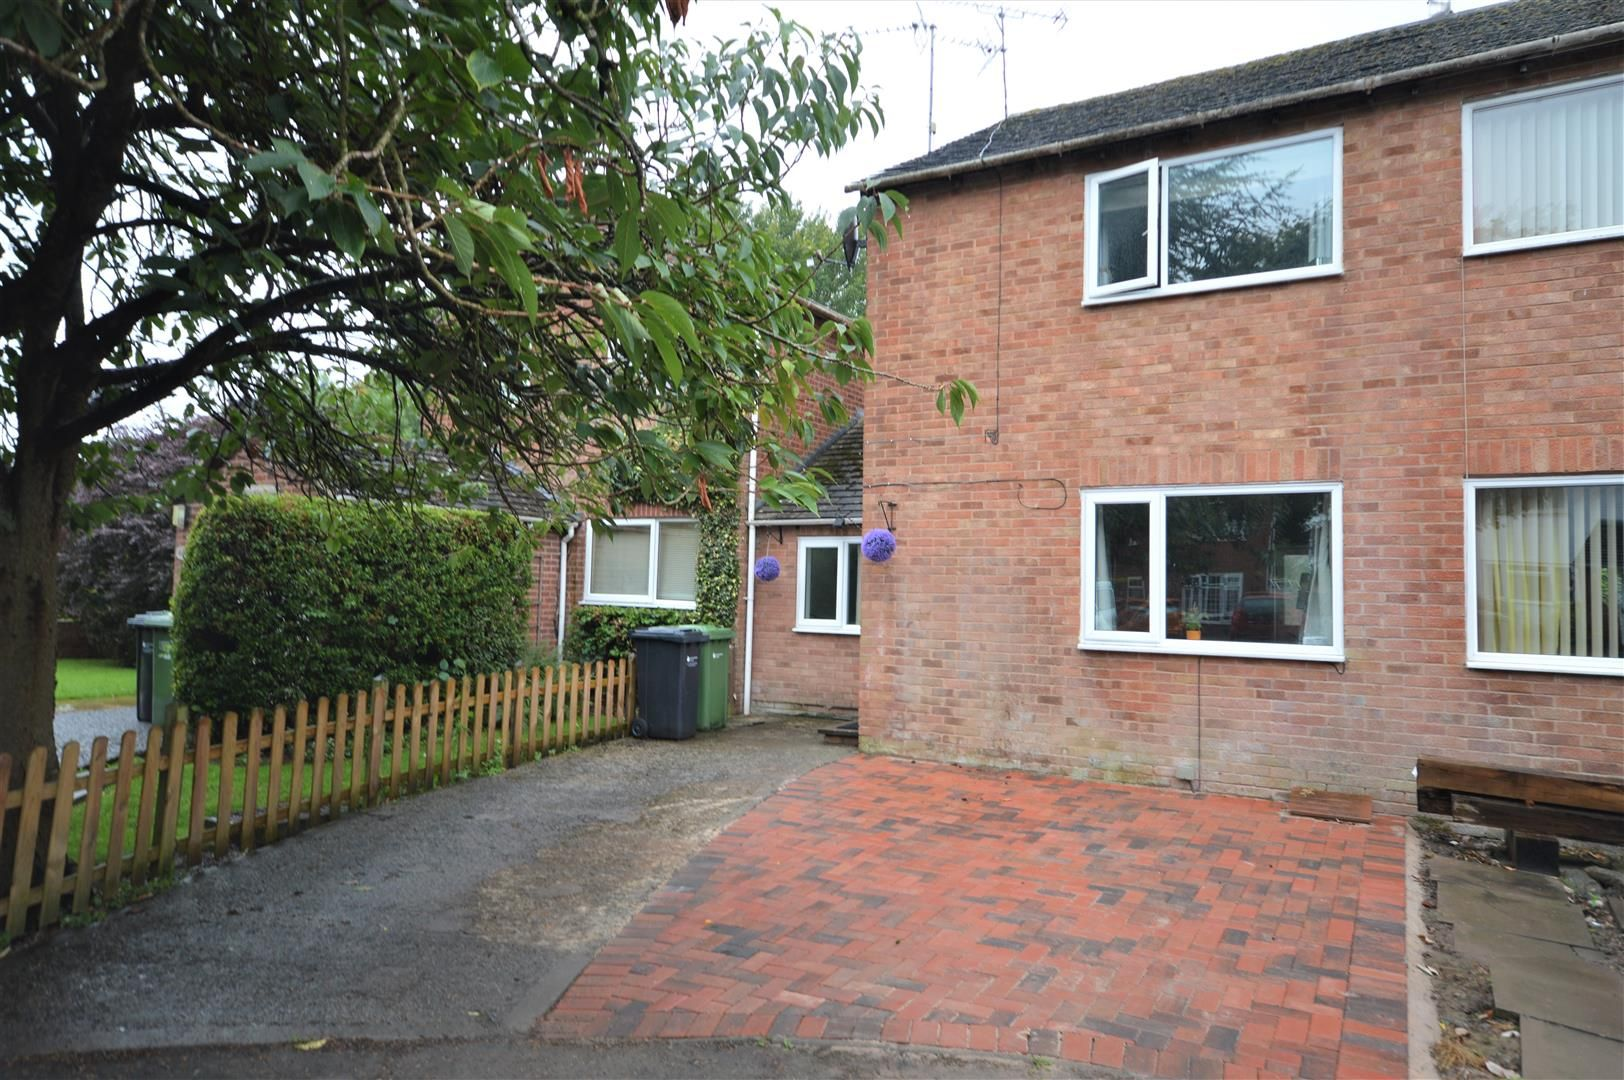 3 bed semi-detached to rent in Leominster, HR6